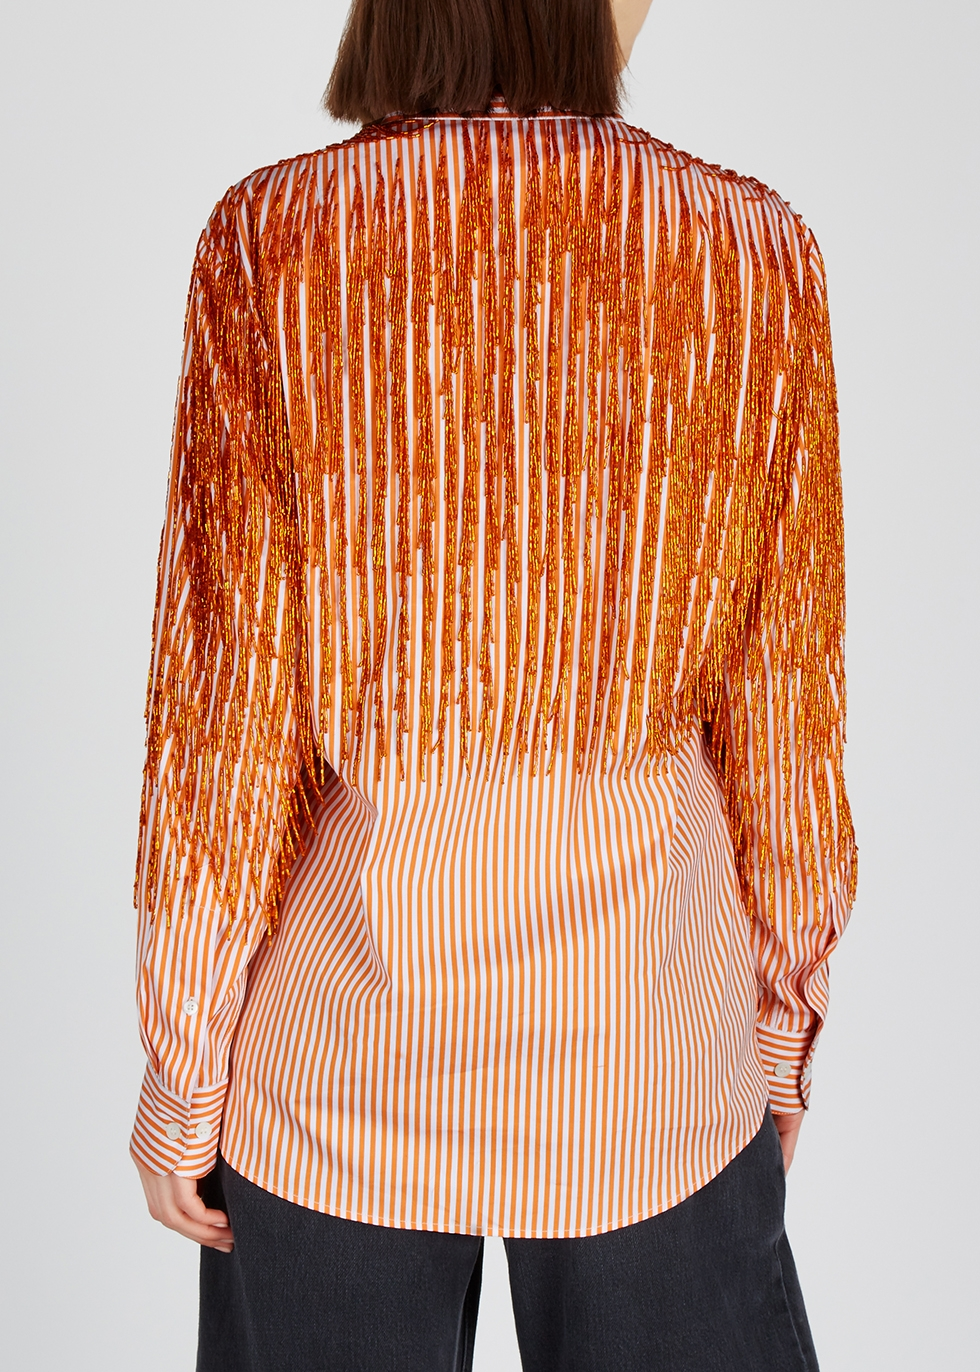 Clavelly striped cotton shirt - Dries Van Noten